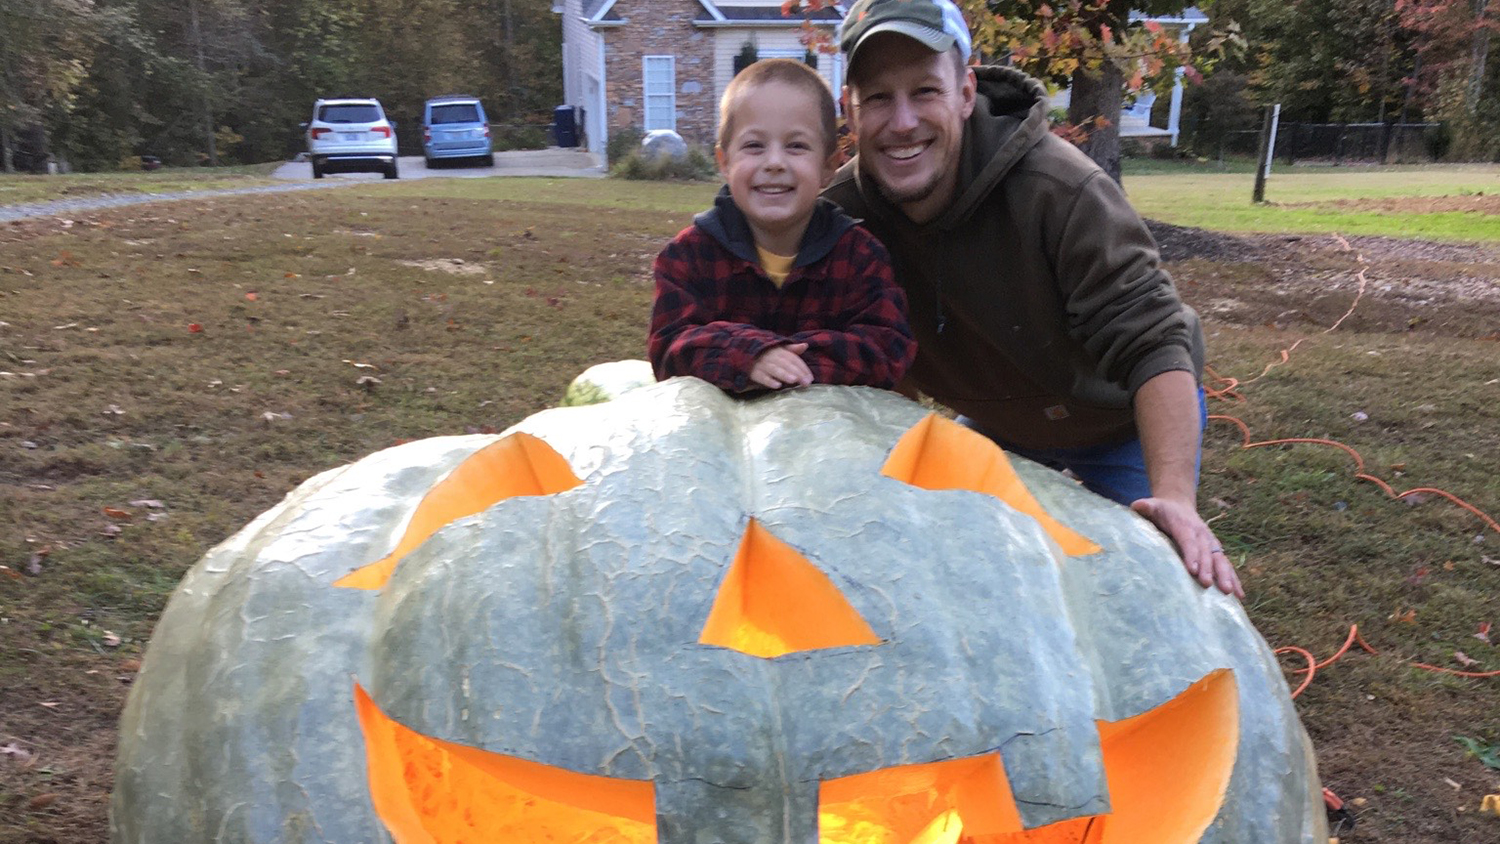 Man and boy pose with a giant jack-o'-lantern.